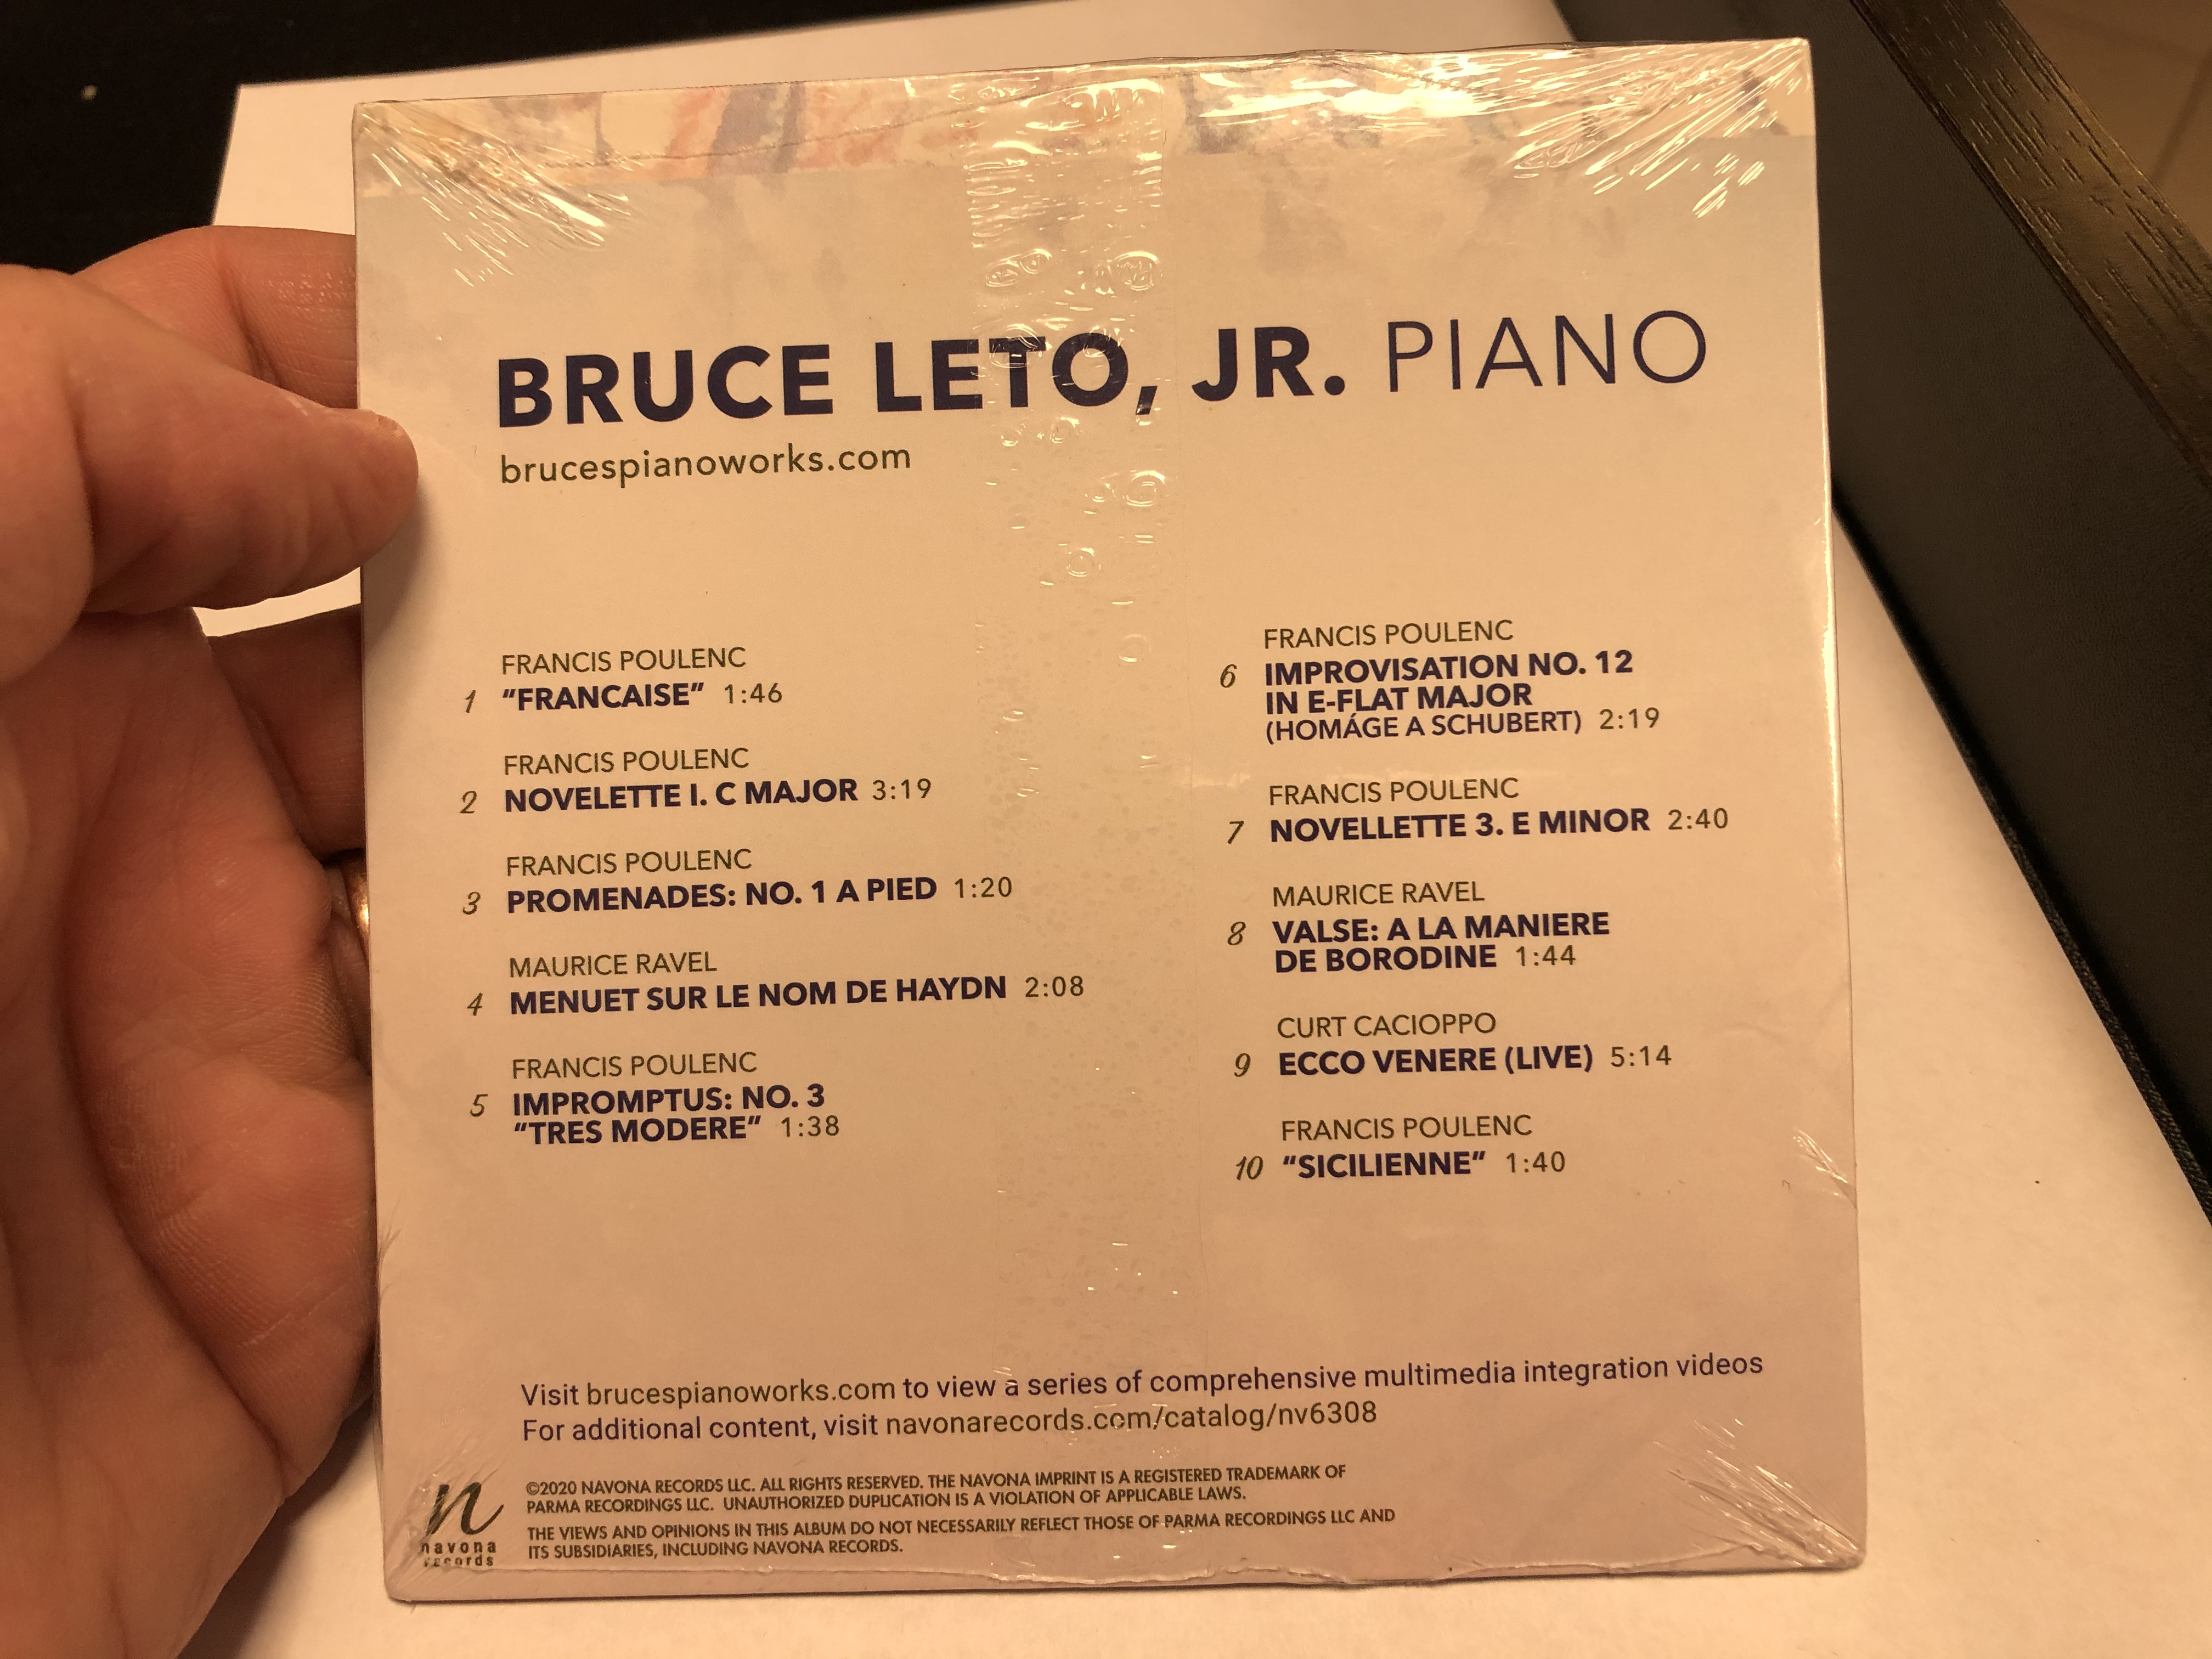 francis-poulenc-curt-cacioppo-maurice-ravel-gomitolo-an-interpreter-s-tribute-to-a-covid-stricken-europe-bruce-leto-jr.-piano-navona-records-audio-cd-2020-nv6308-2-.jpg